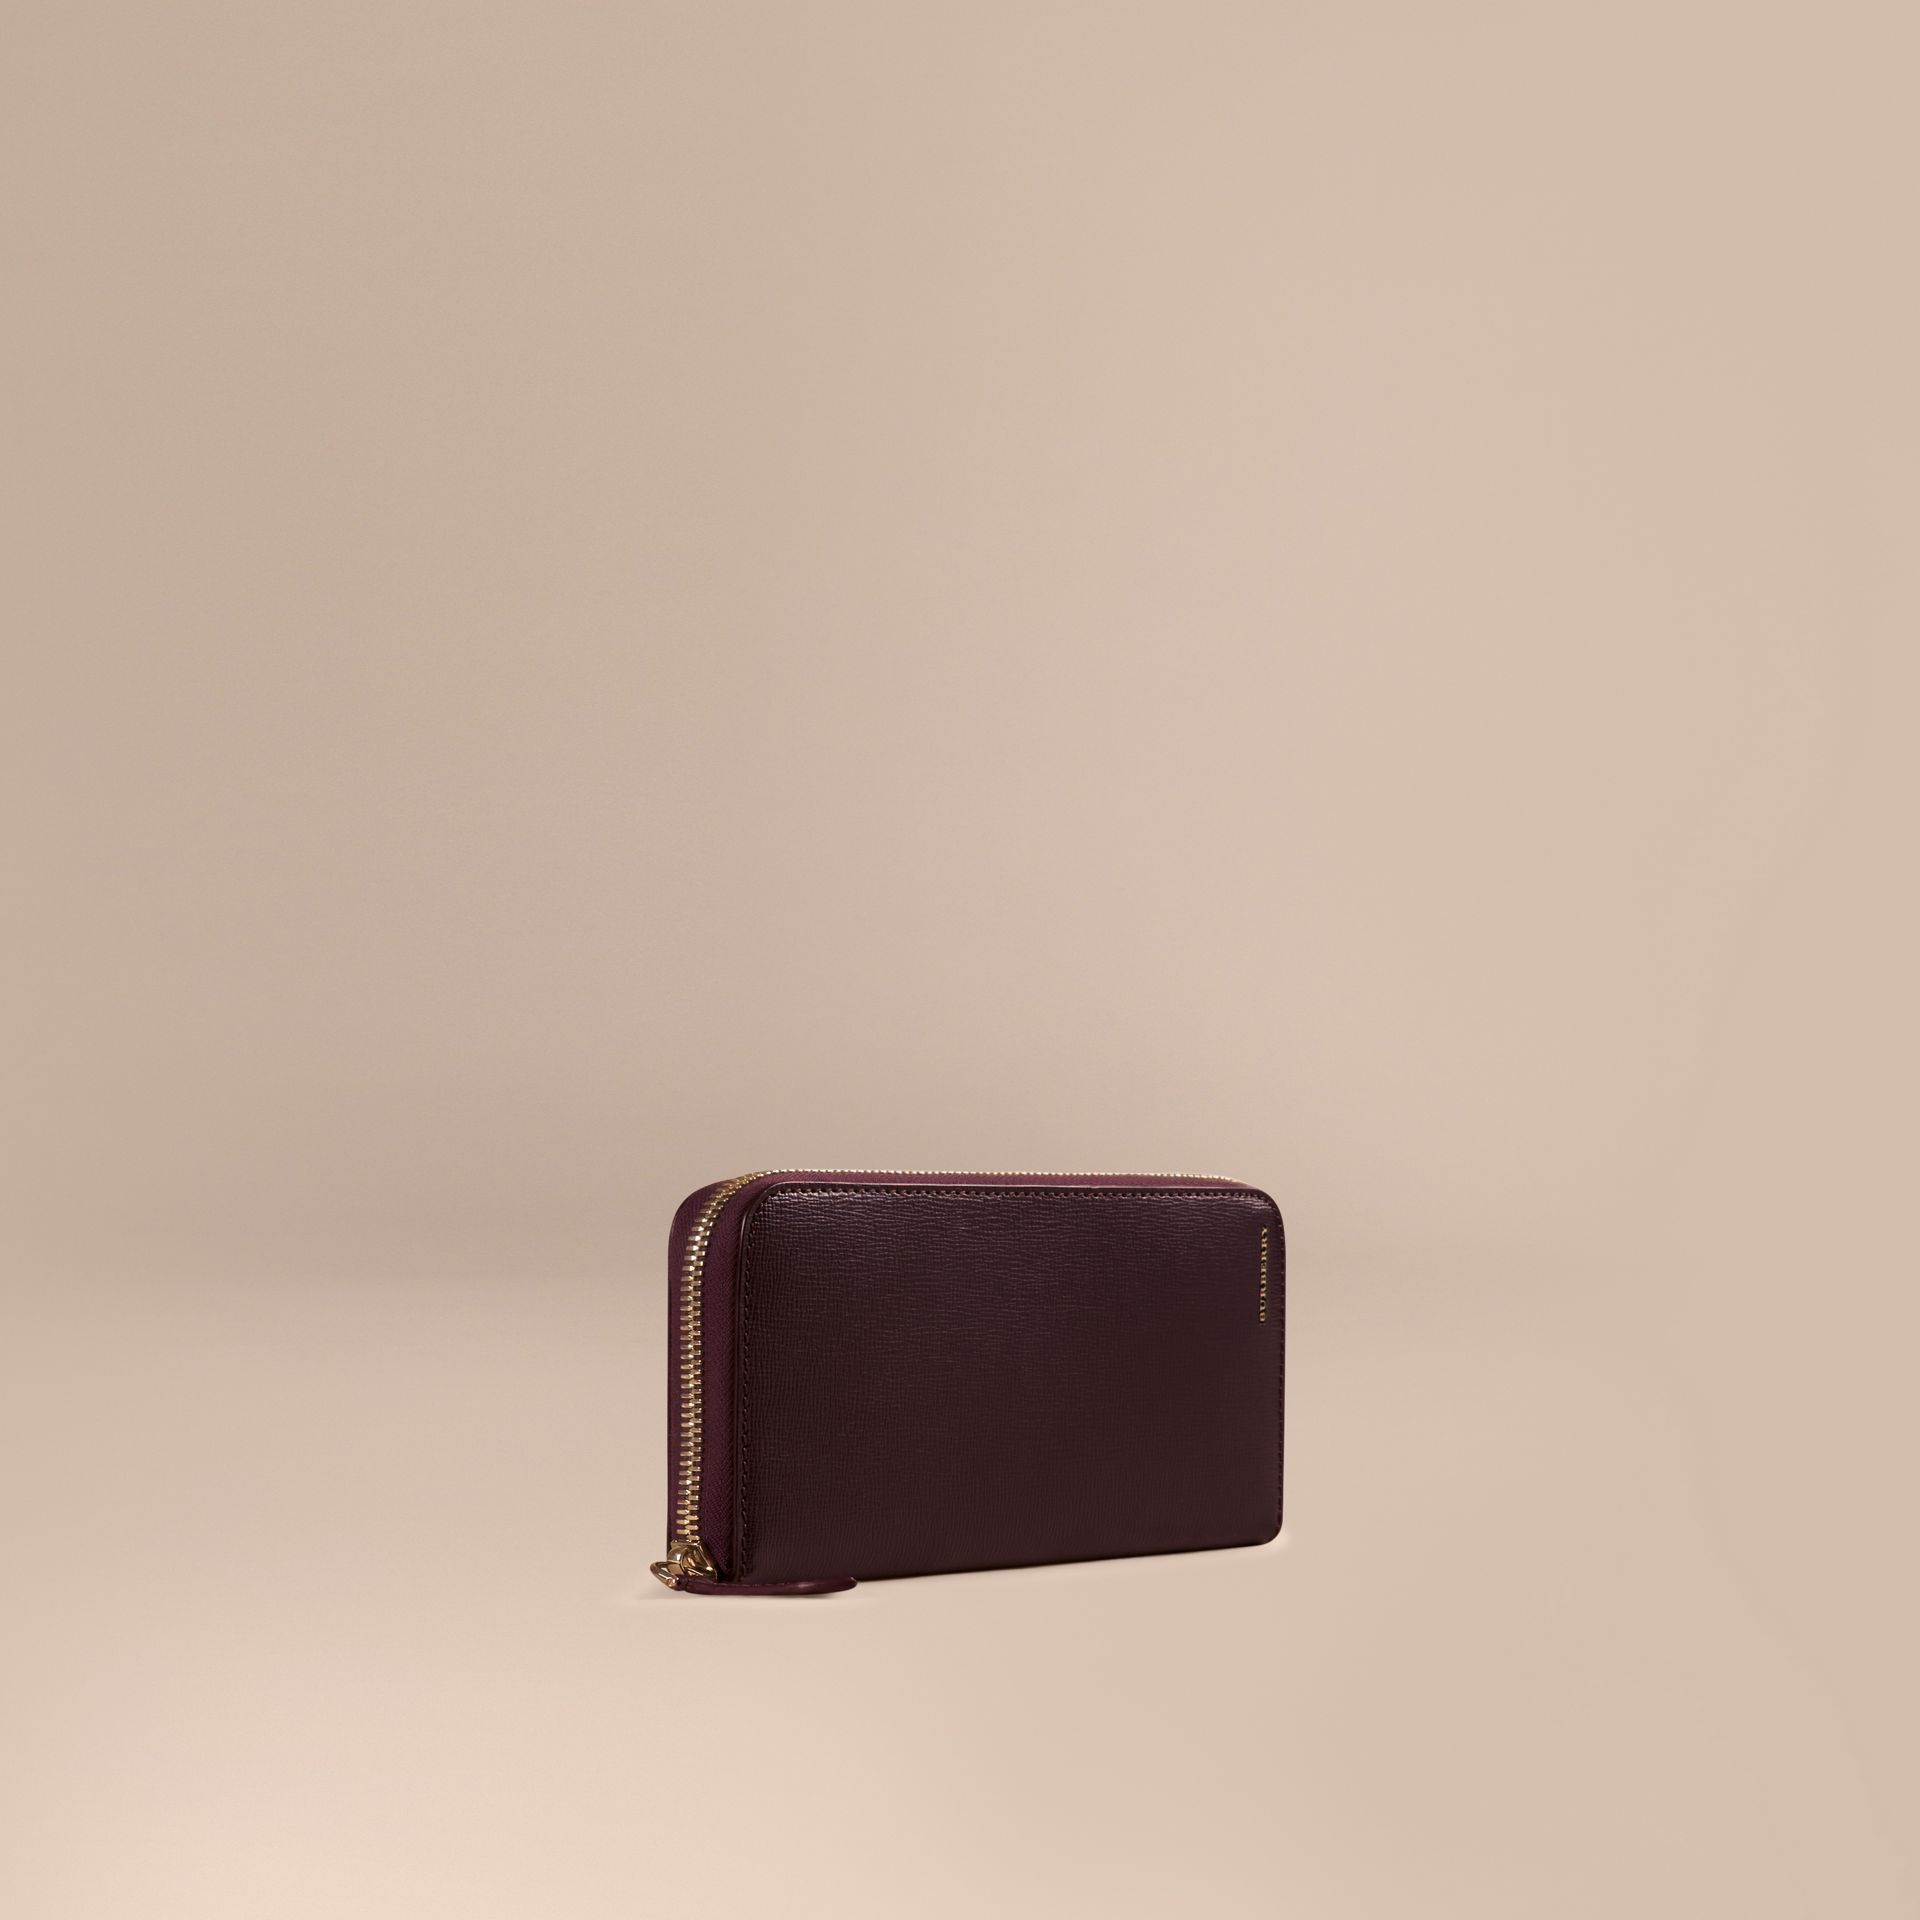 Wine London Leather Ziparound Wallet Wine - gallery image 1